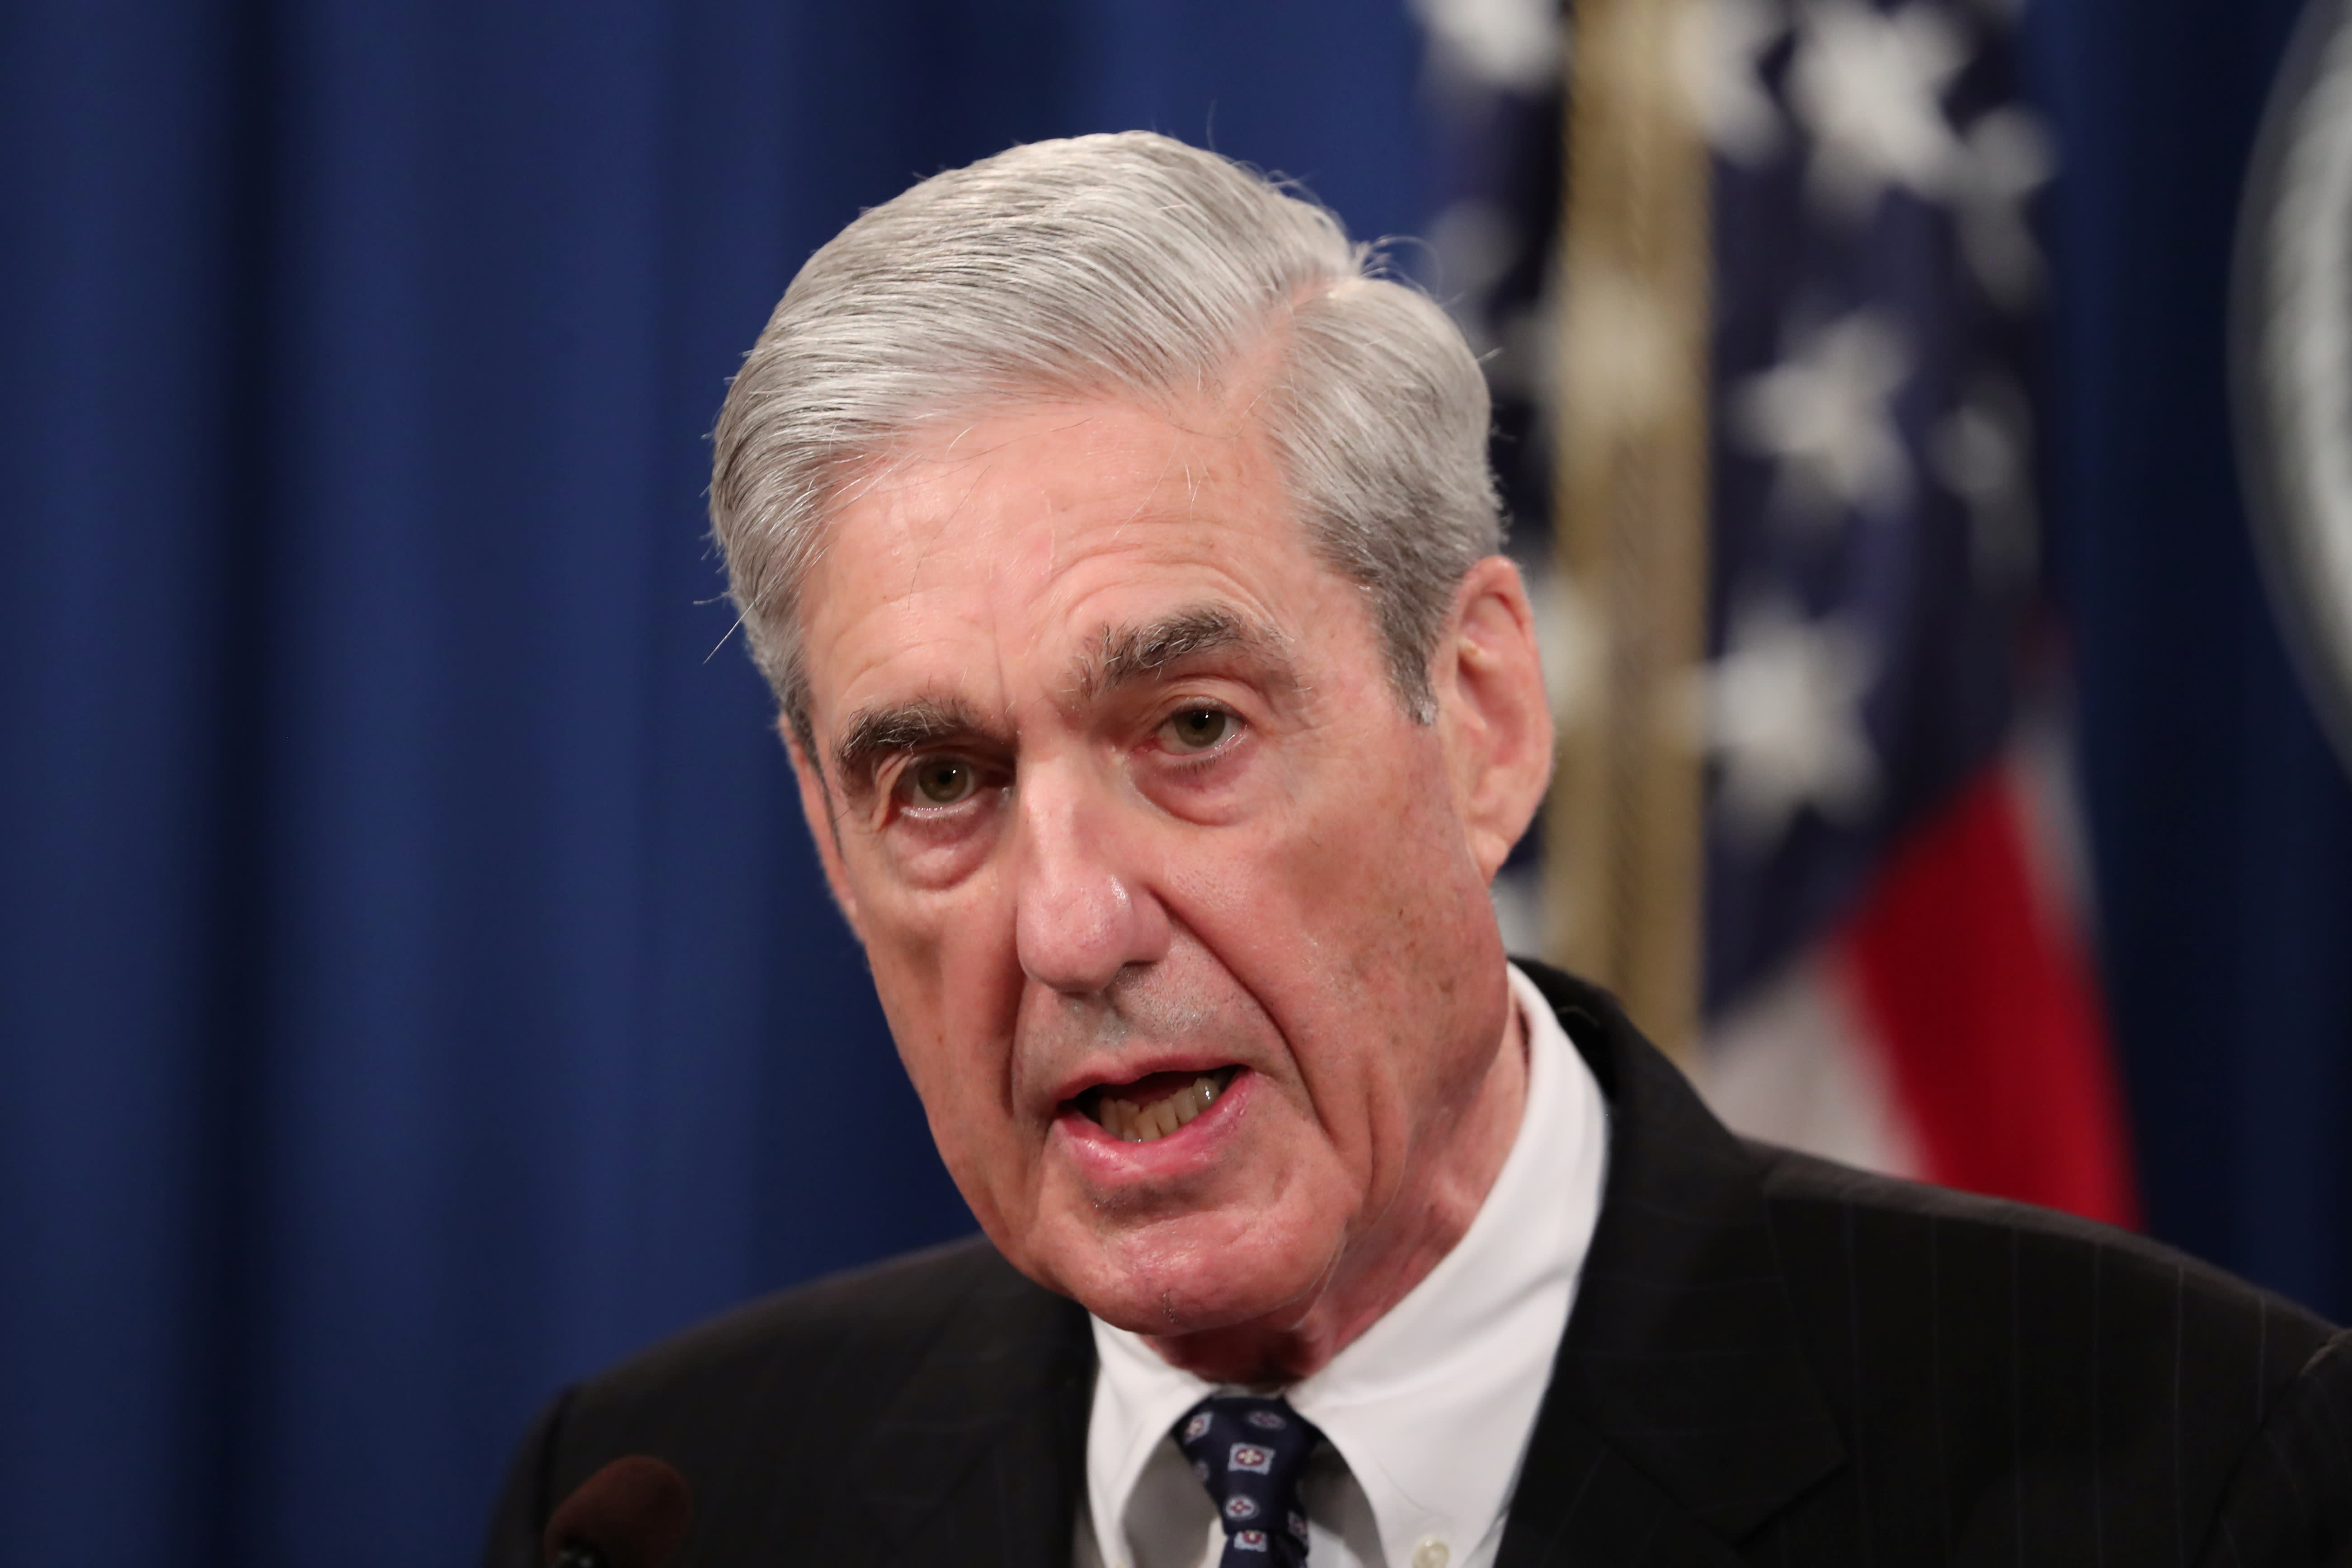 Robert Mueller agrees to publicly testify before House committees on Trump Russia probe on July 17